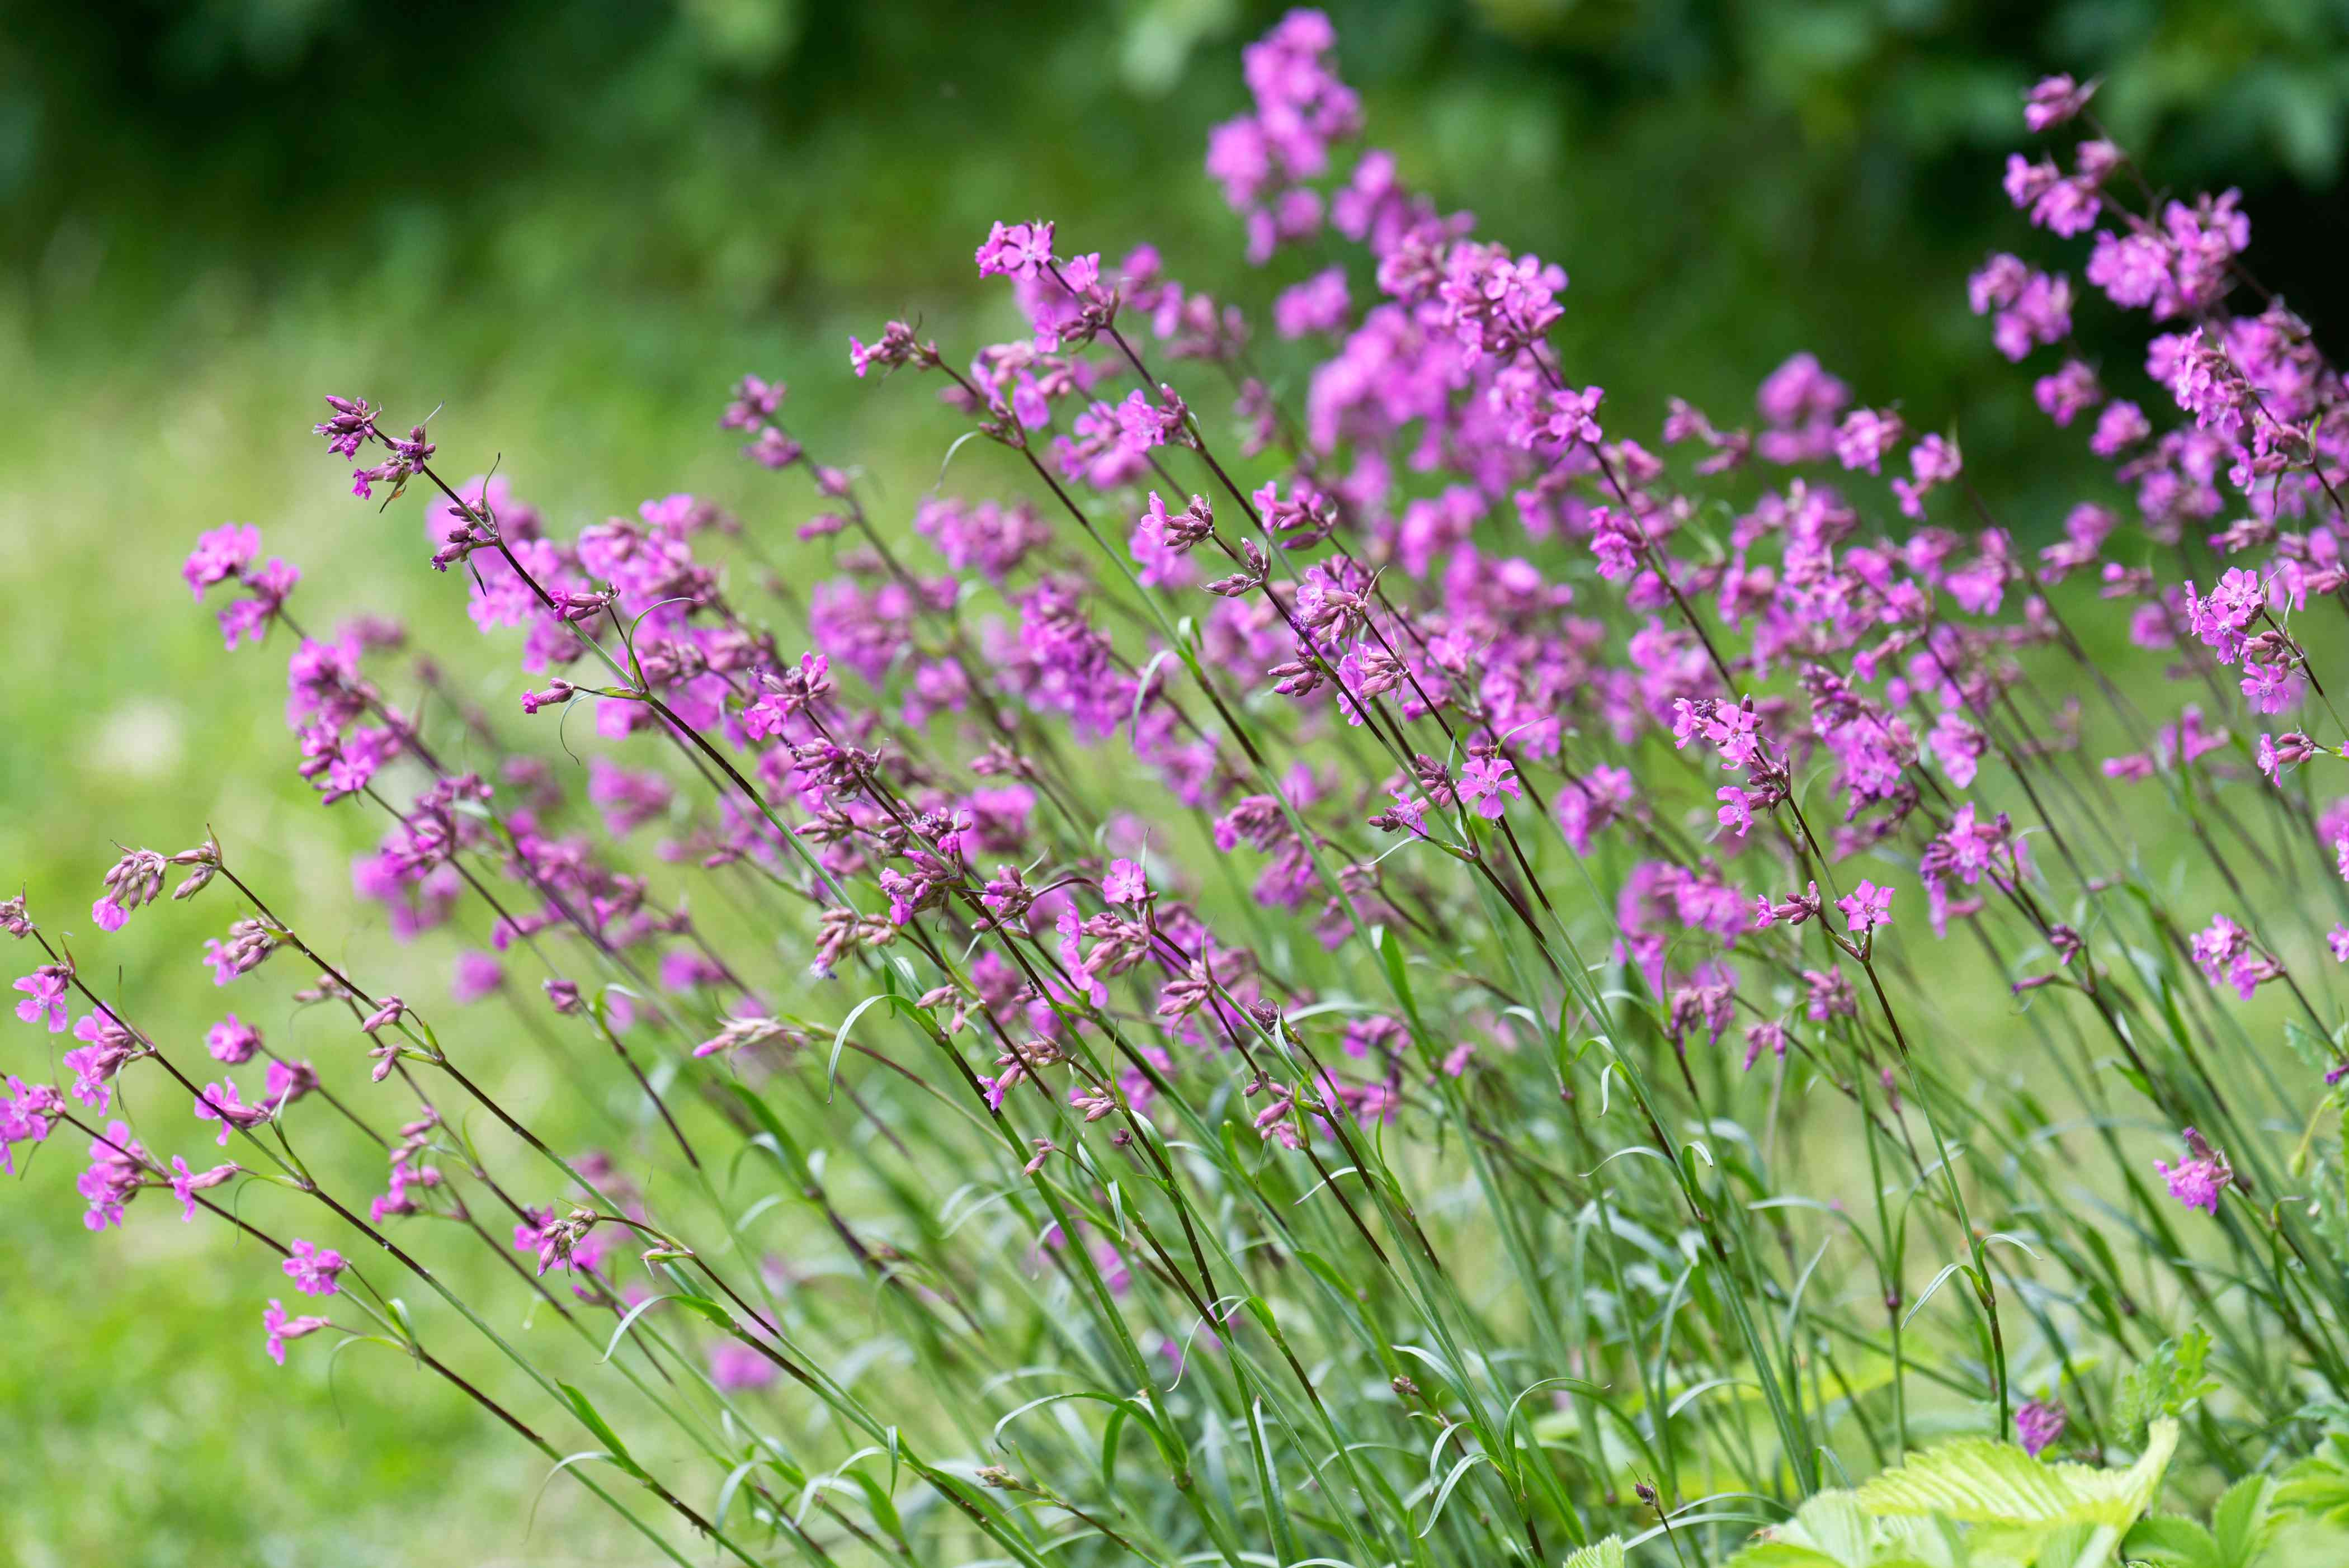 Silene viscaria plants with thin stems and small pink flowers on ends